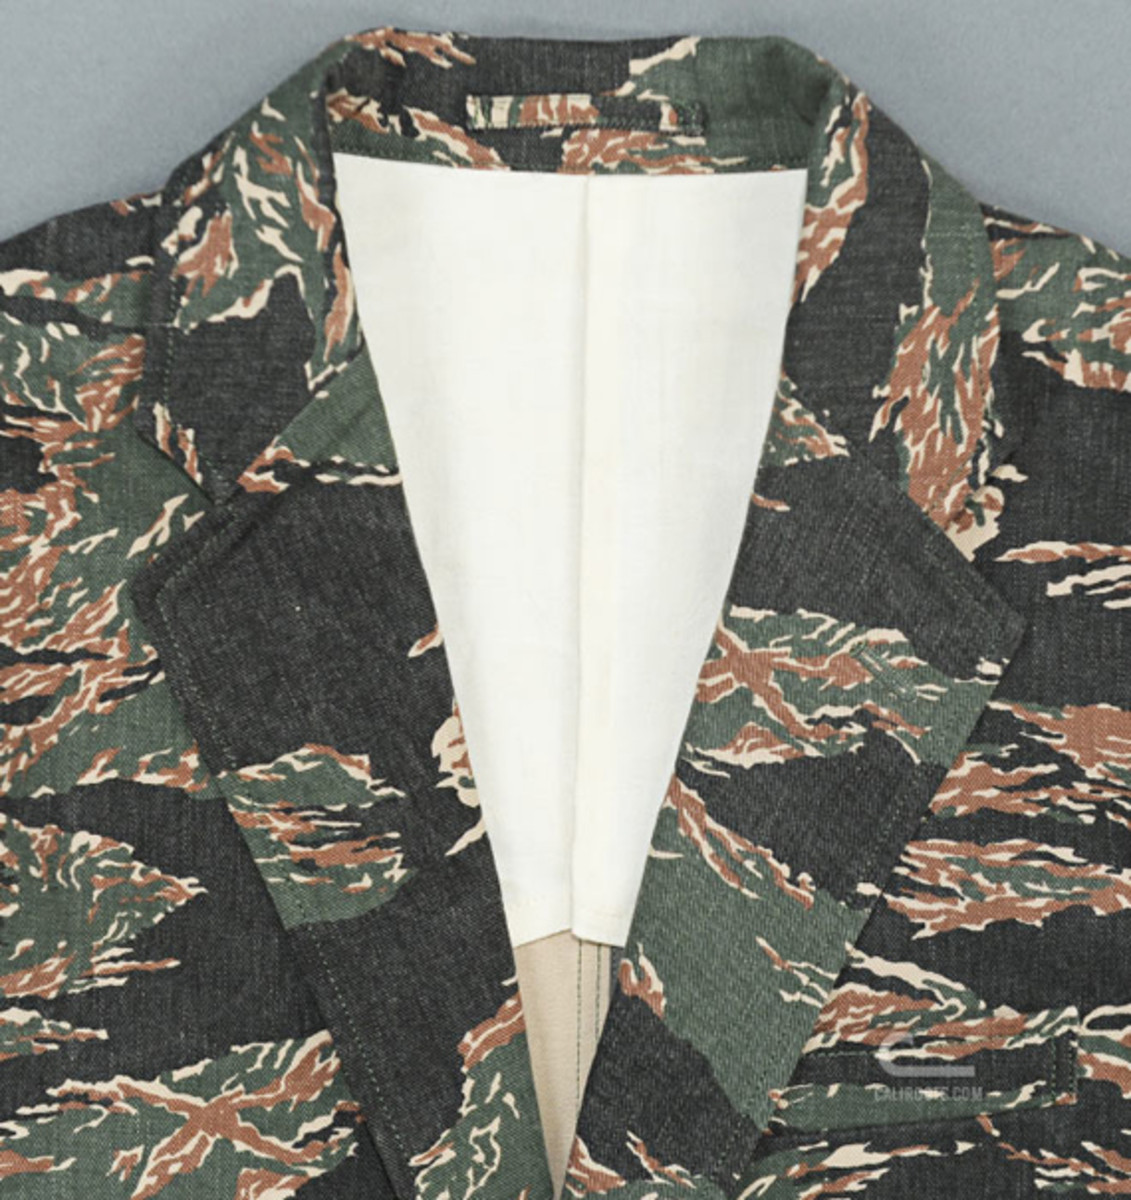 mr-bathing-ape-3-button-jacket-tiger-camouflage-05